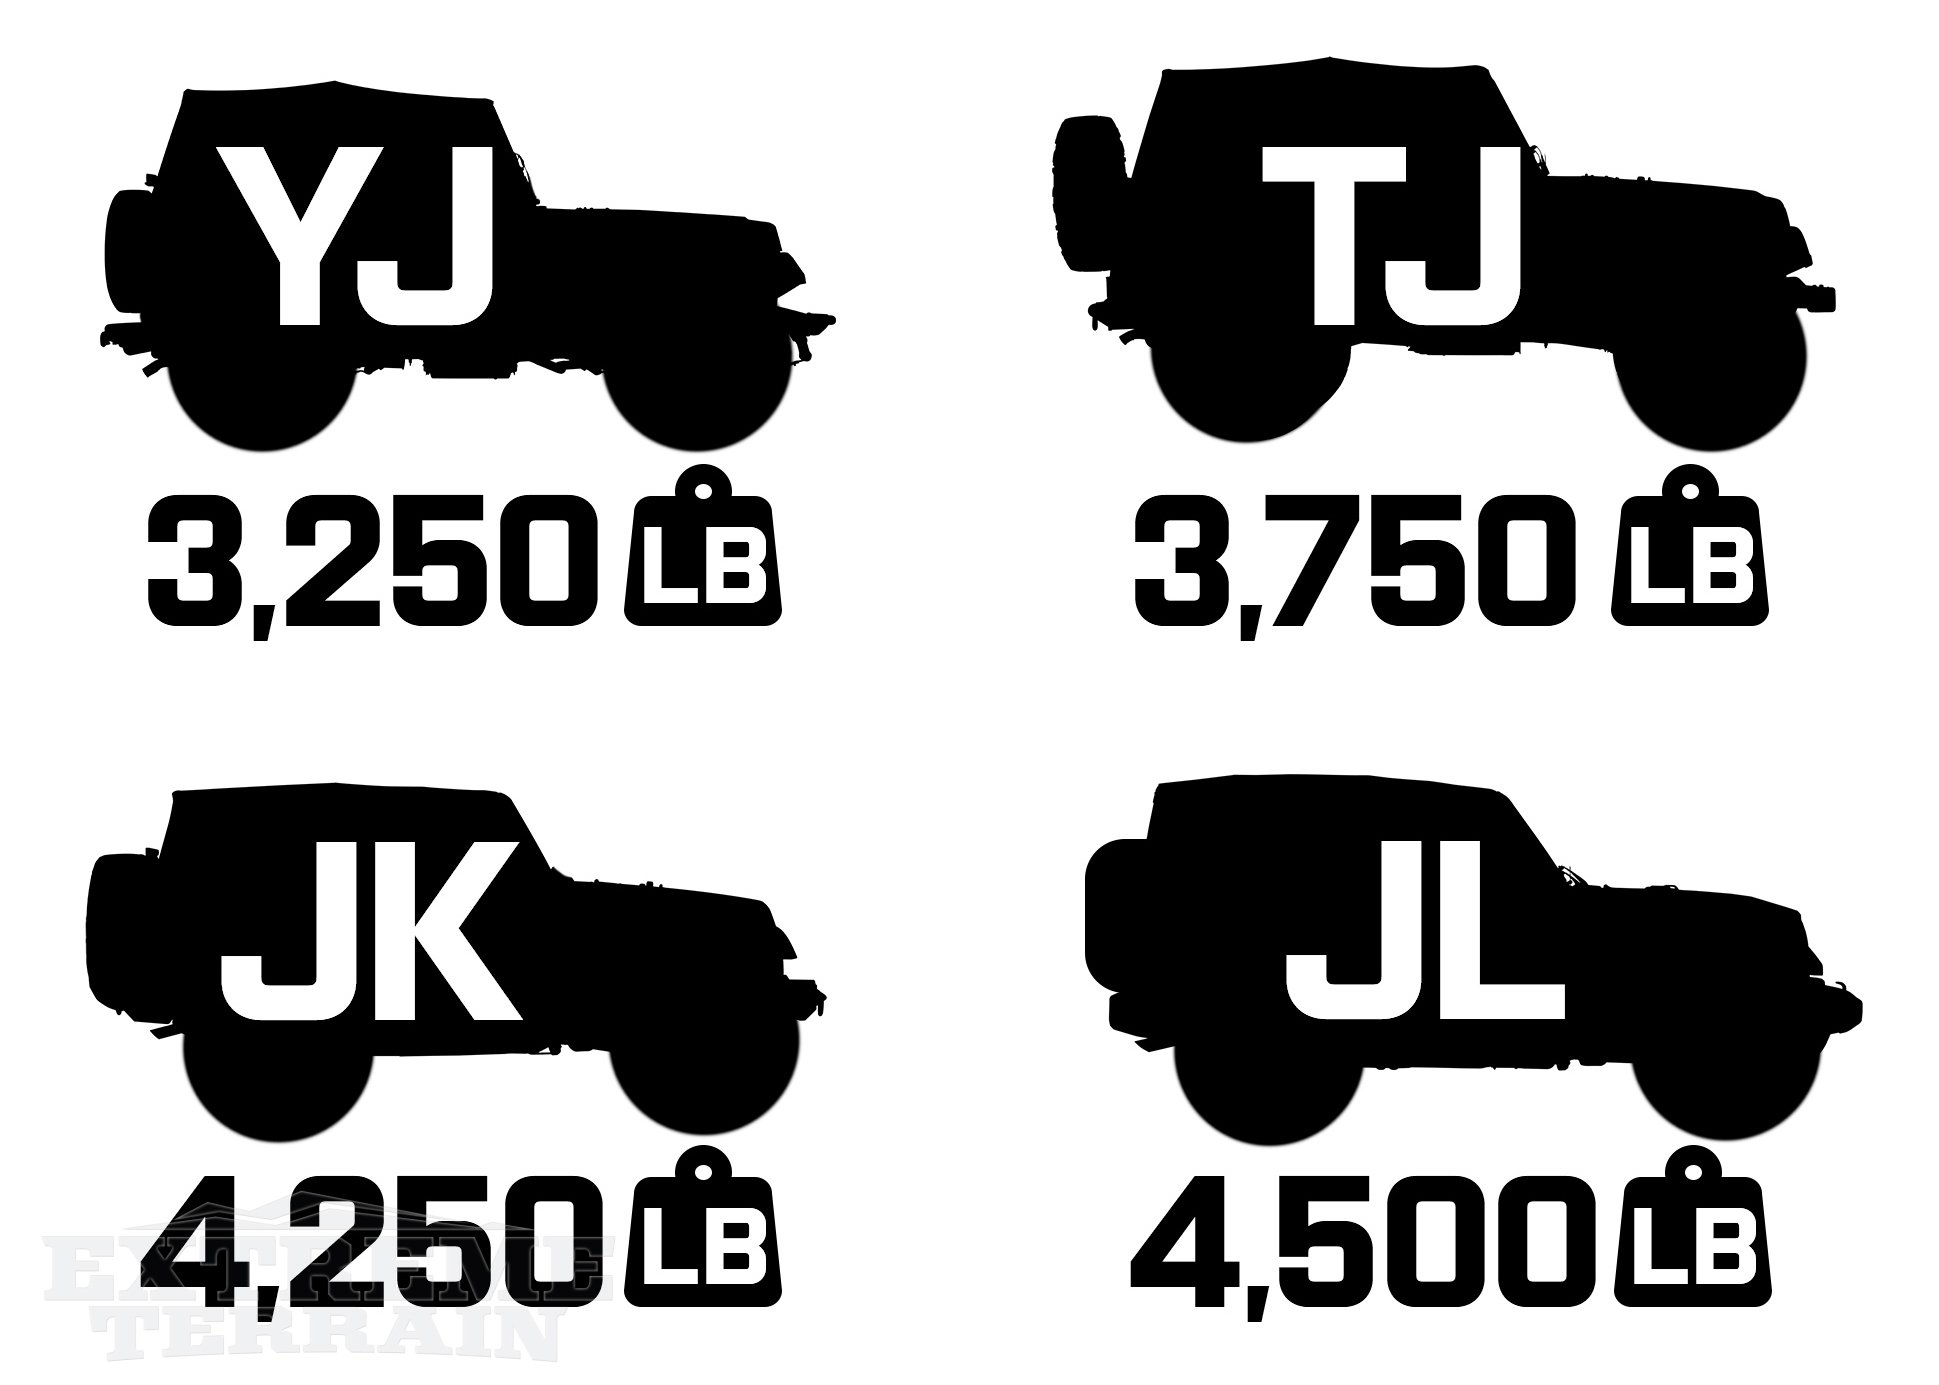 JL, JK, TJ, and YJ Wrangler Curb Weights